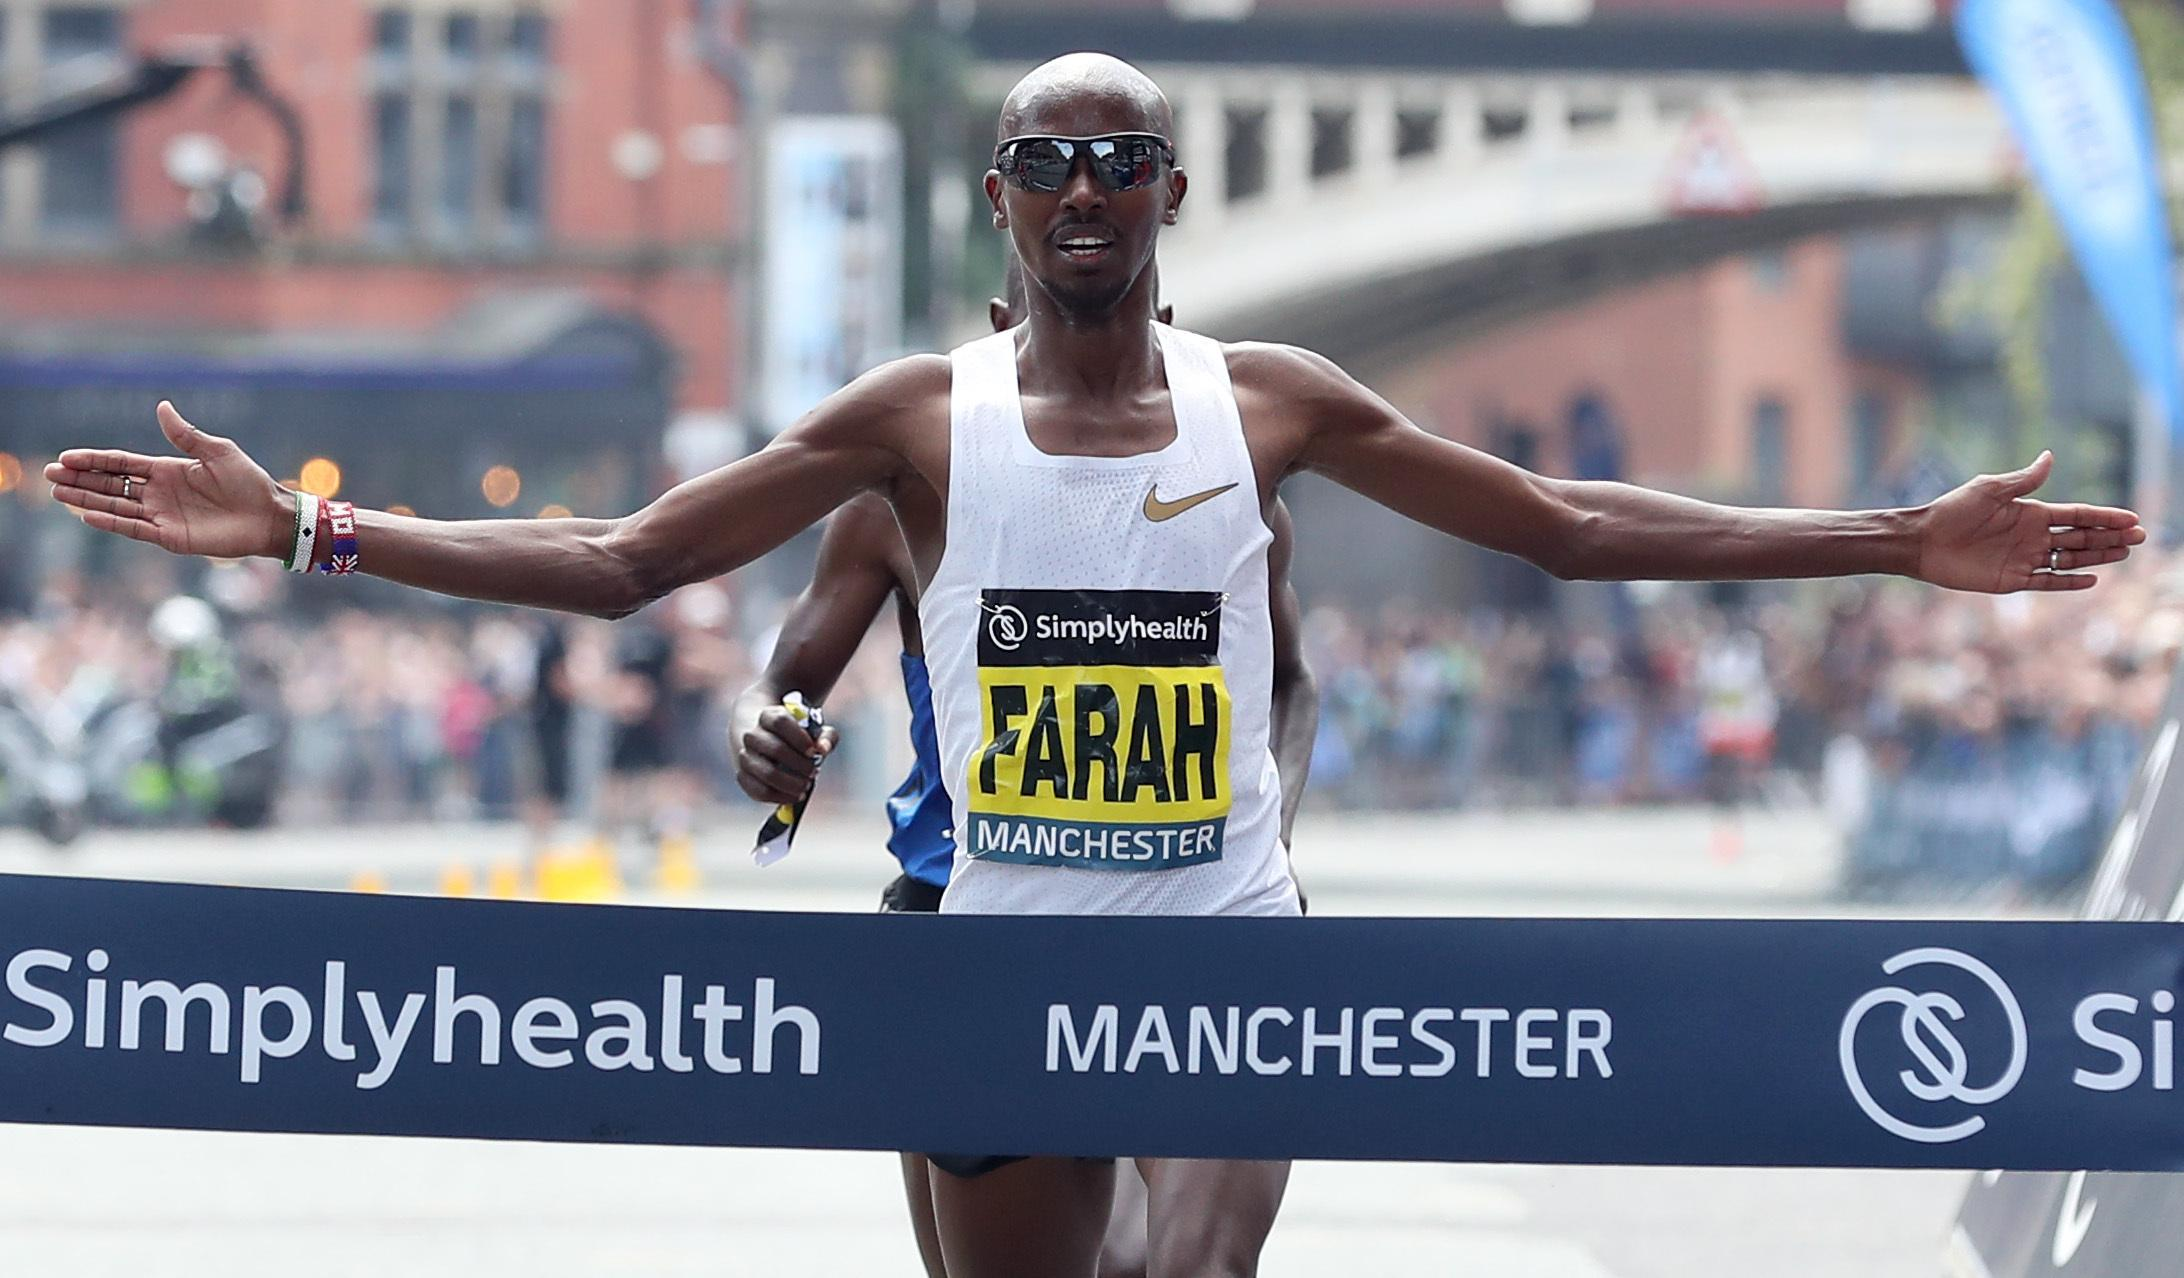 Mo Farah will be hoping to win his fifth consecutive title